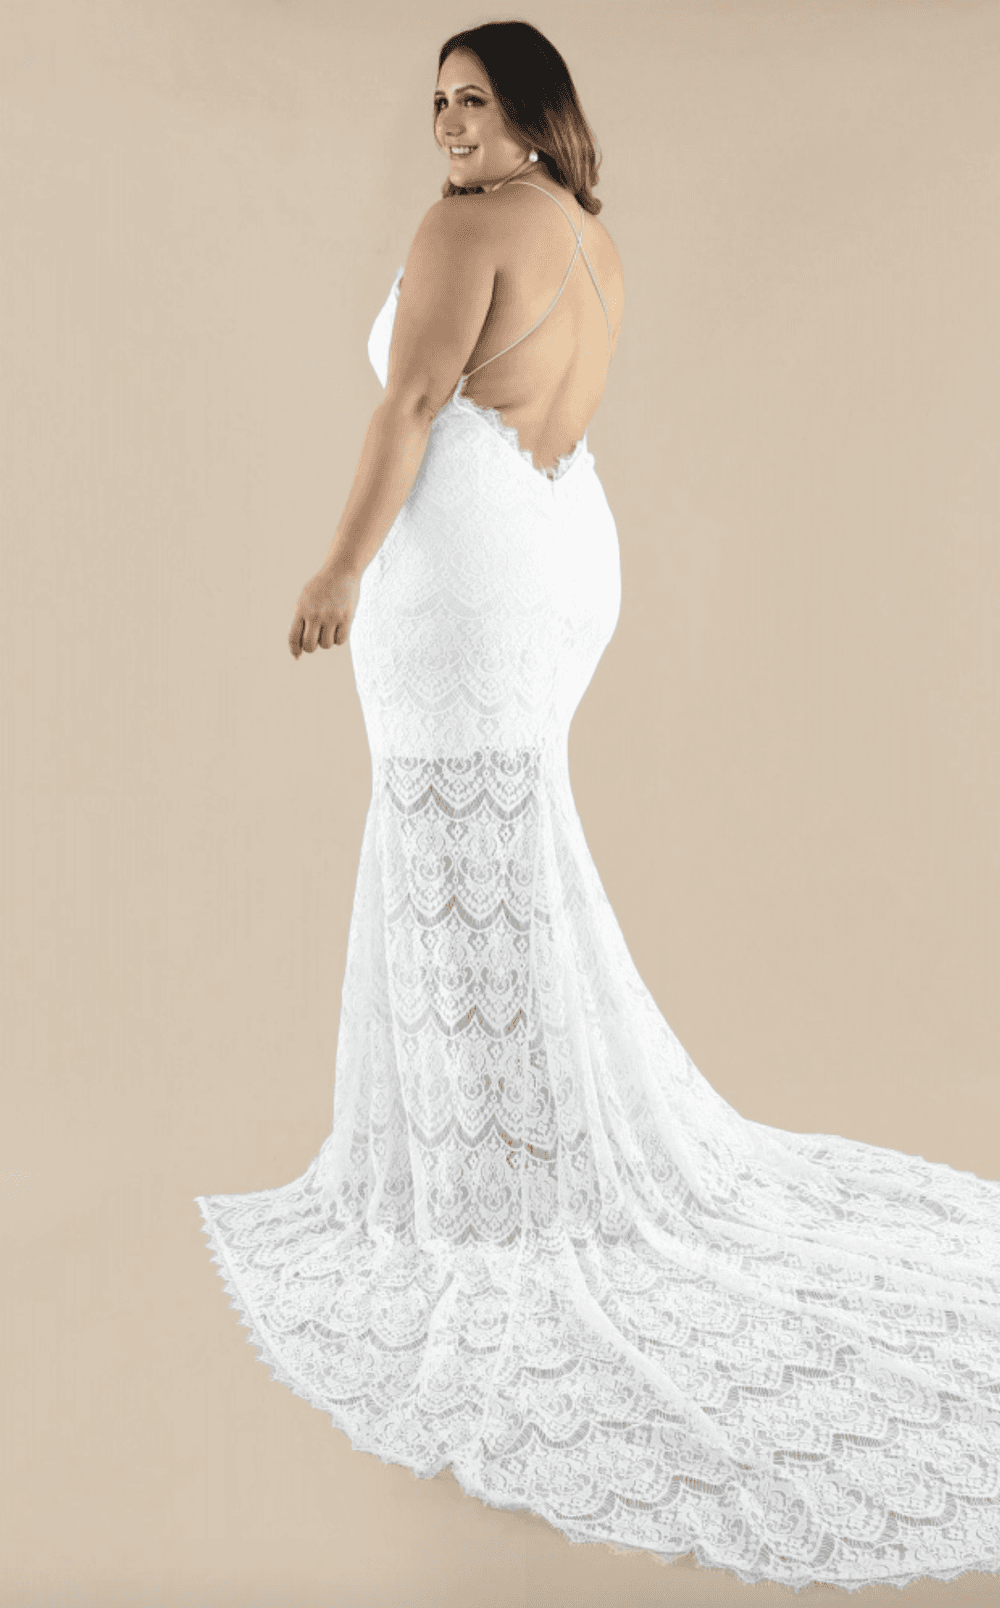 30 Perfect Plus Size Wedding Dresses And Bridal Gowns For Curvy Brides